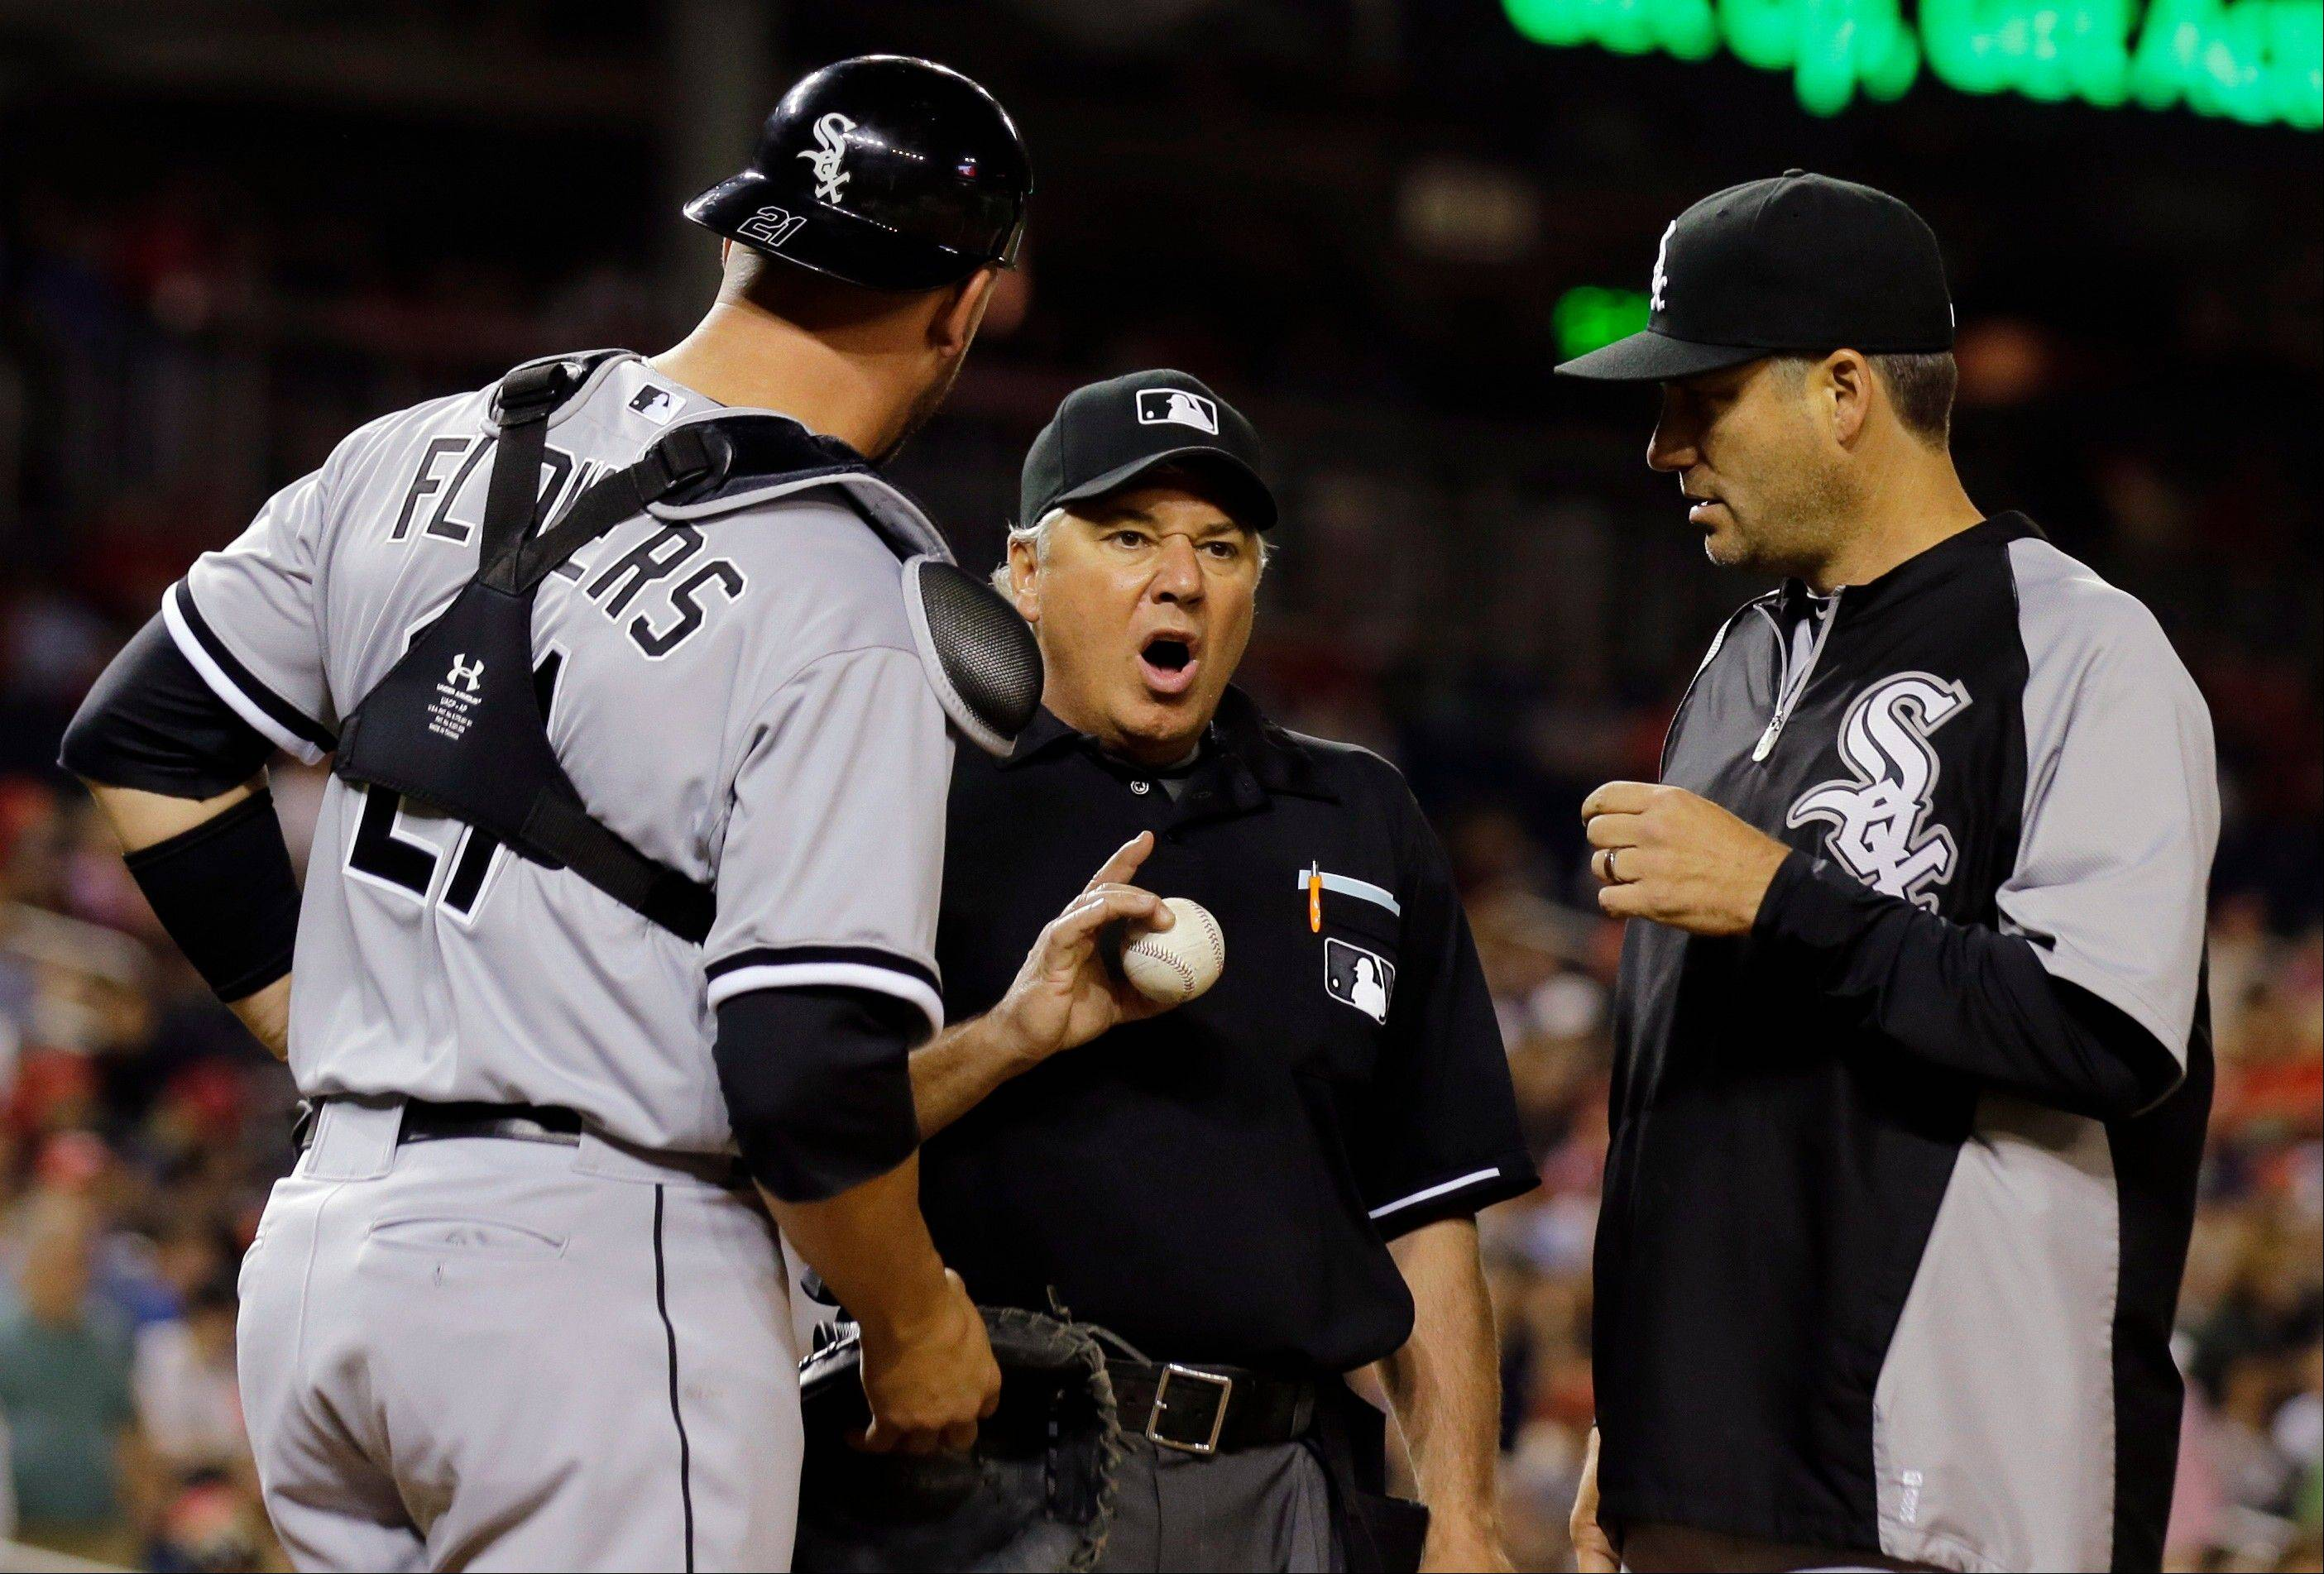 Tyler Flowers (21) and manager Robin Ventura talk with home plate umpire Tom Hallion about a past ball call that scored a run during the fourth inning of an interleague baseball game against the Chicago White Sox at Nationals Park, Thursday, April 11, 2013, in Washington.